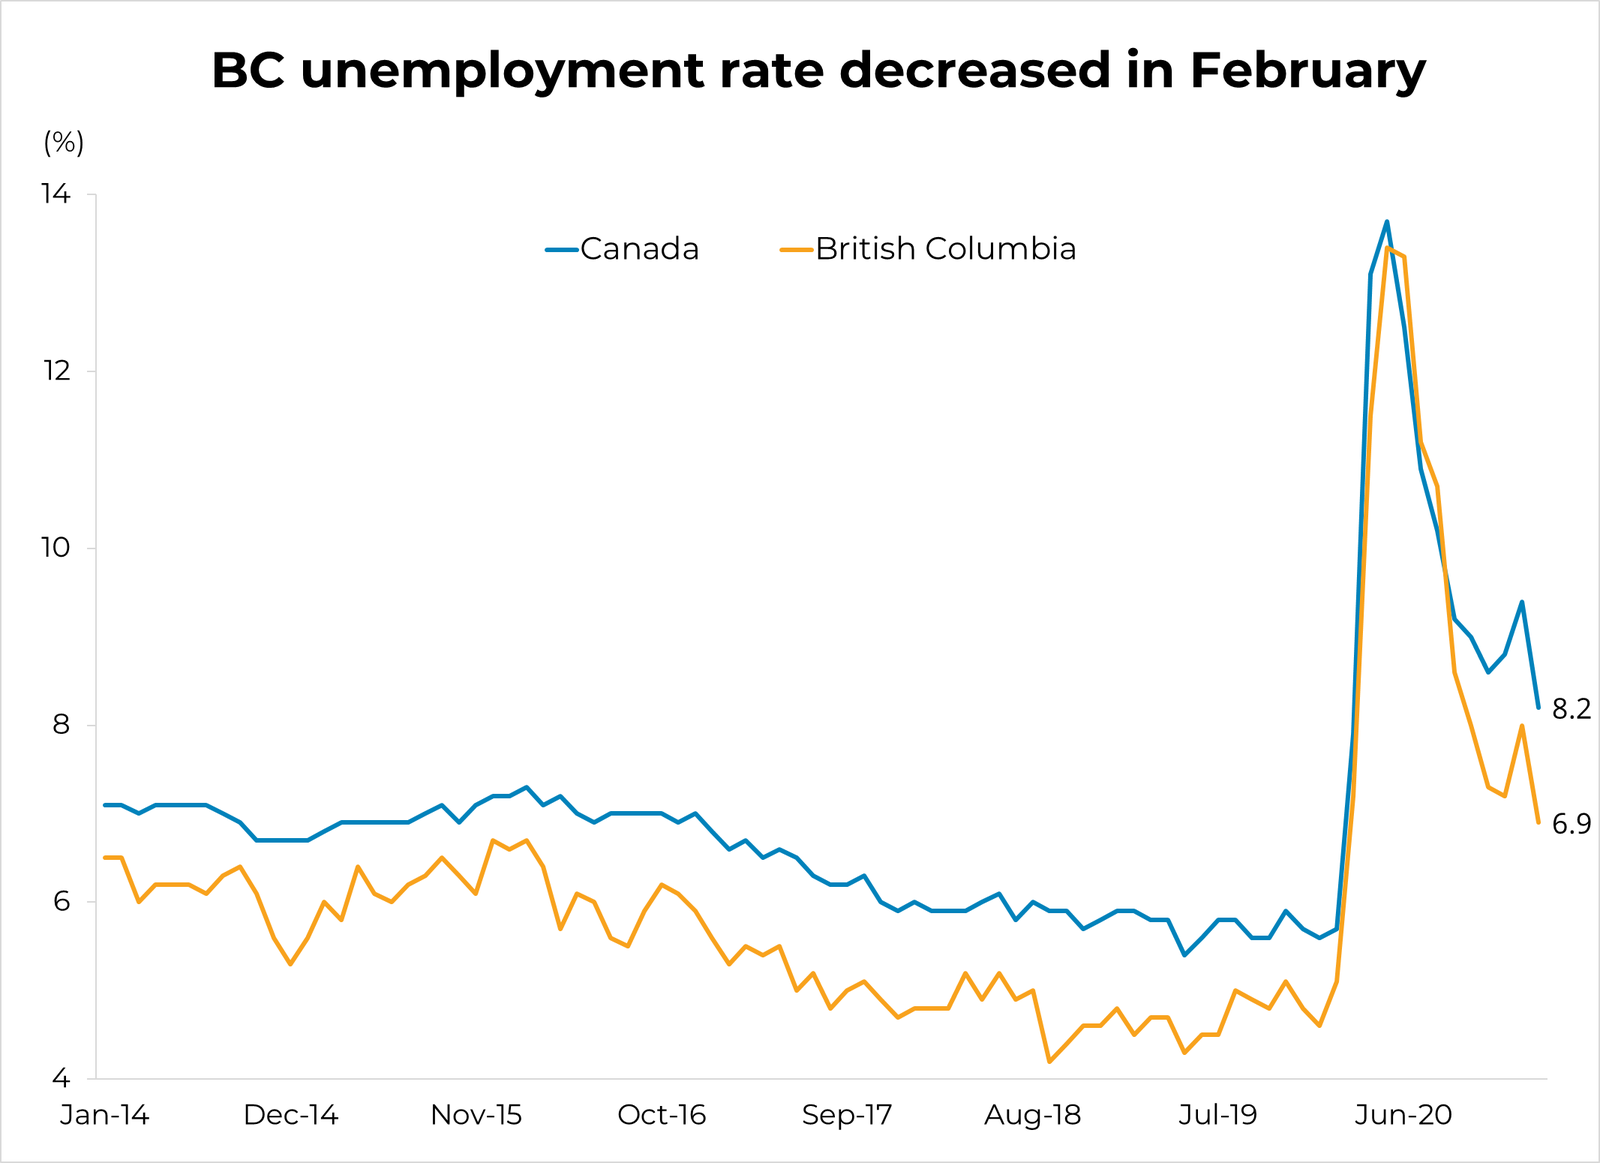 BC unemployment numbers for February 2021